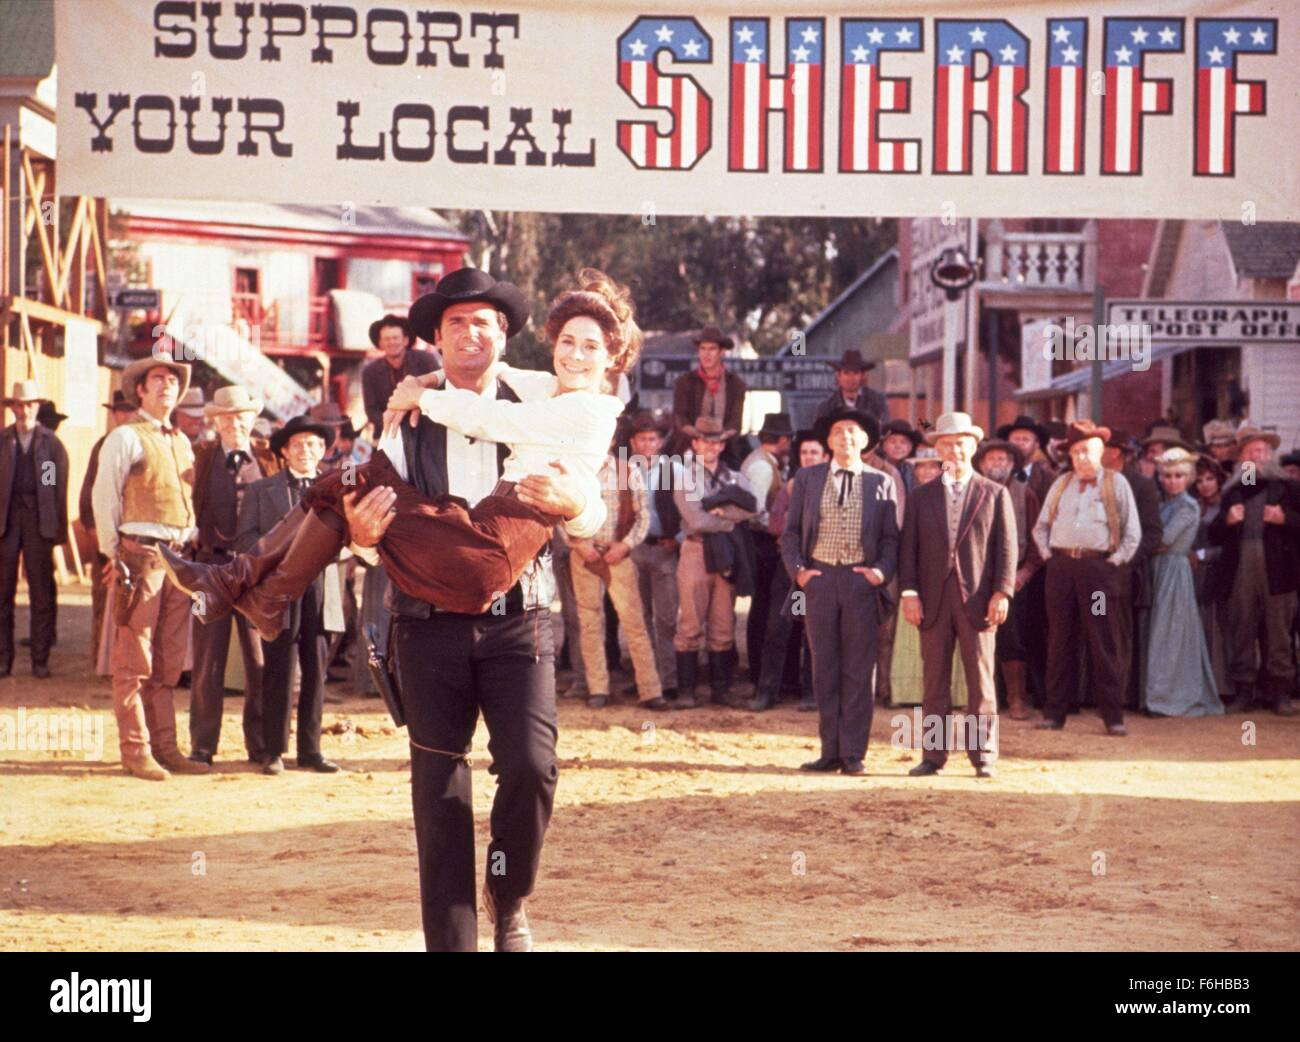 1969, Film Title: SUPPORT YOUR LOCAL SHERIFF, Director: BURT KENNEDY, Pictured: JAMES GARNER, JOAN HACKETT. (Credit - Stock Image